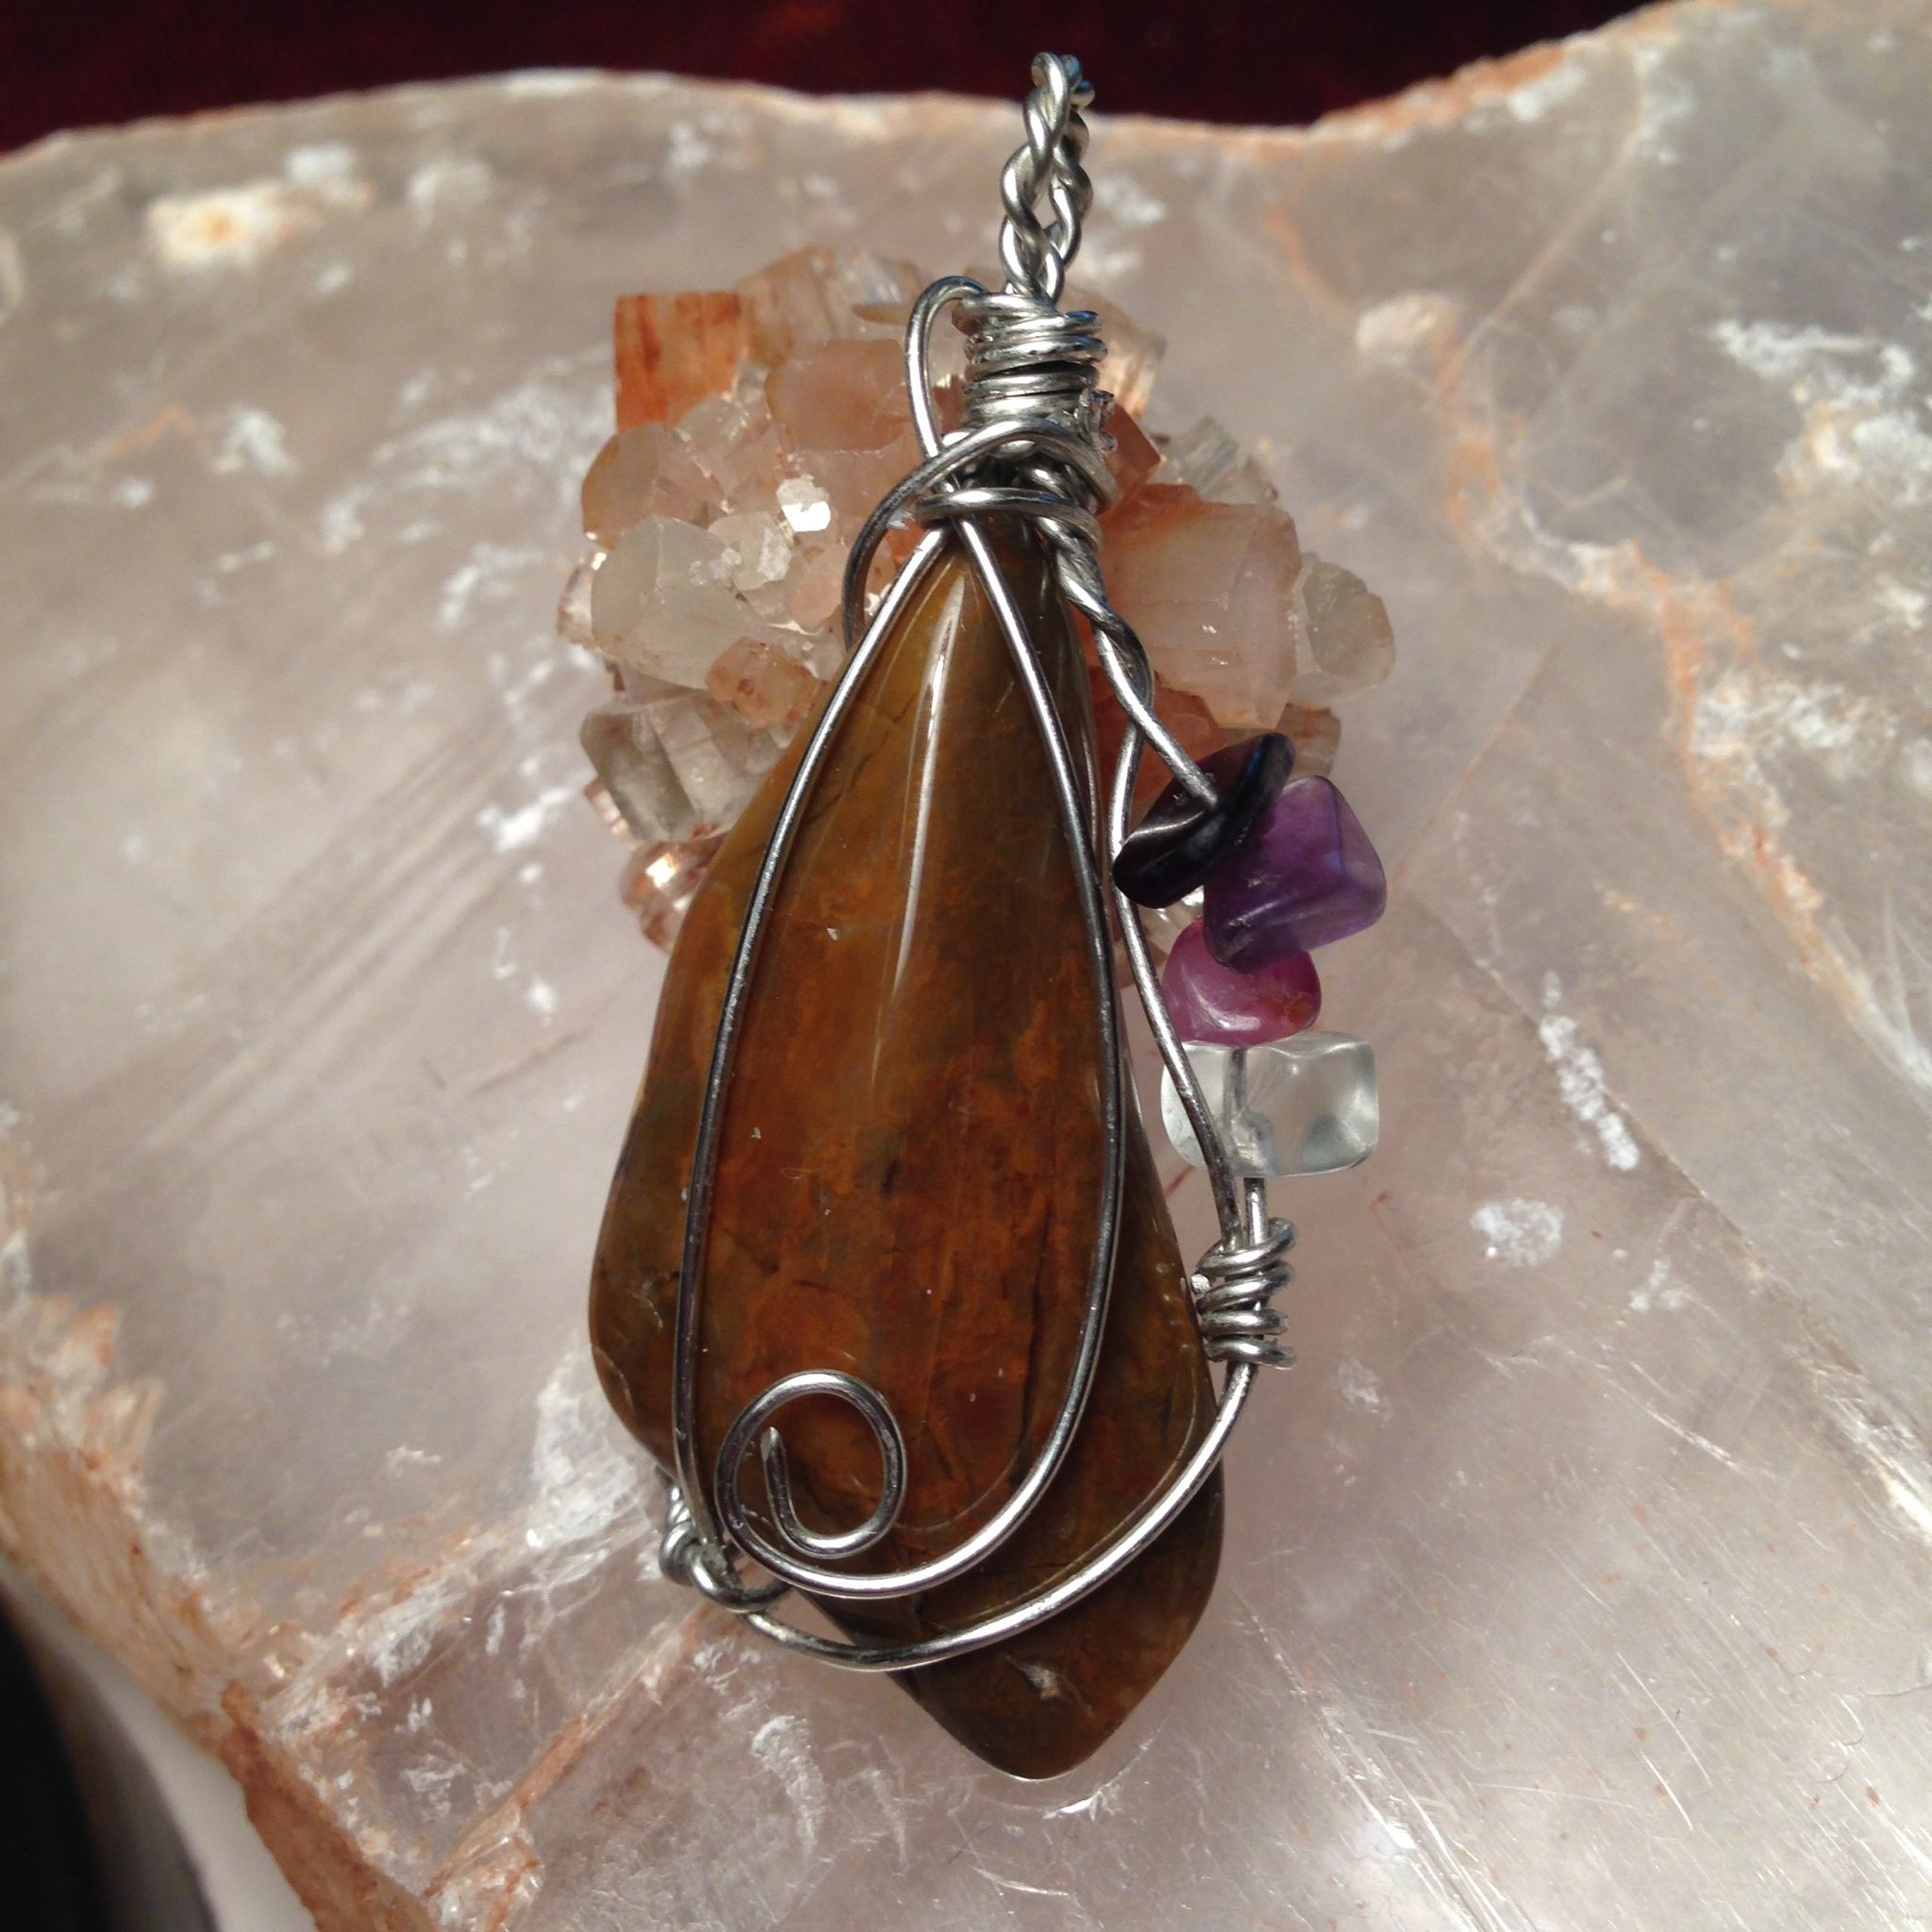 Petrified Wood helps restore physical energy and is good in relieving hip and back problems. Petrified Wood is an extremely grounding and protecting stone. It is said to calm the nerves and fears and to encourage feelings of well-being, safety and security. It is a good stone for meditation and f...